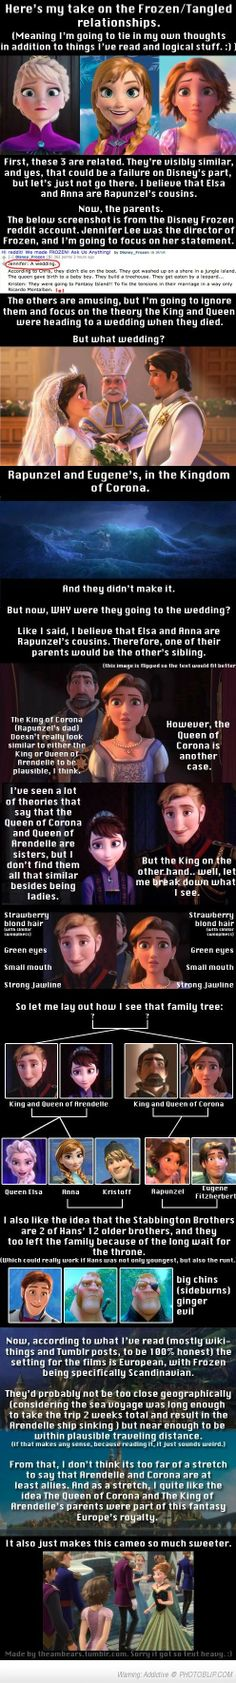 I Love This. I Especially Like The Theory Of The Queen Of Corona And The King Of Arendelle Being Siblings